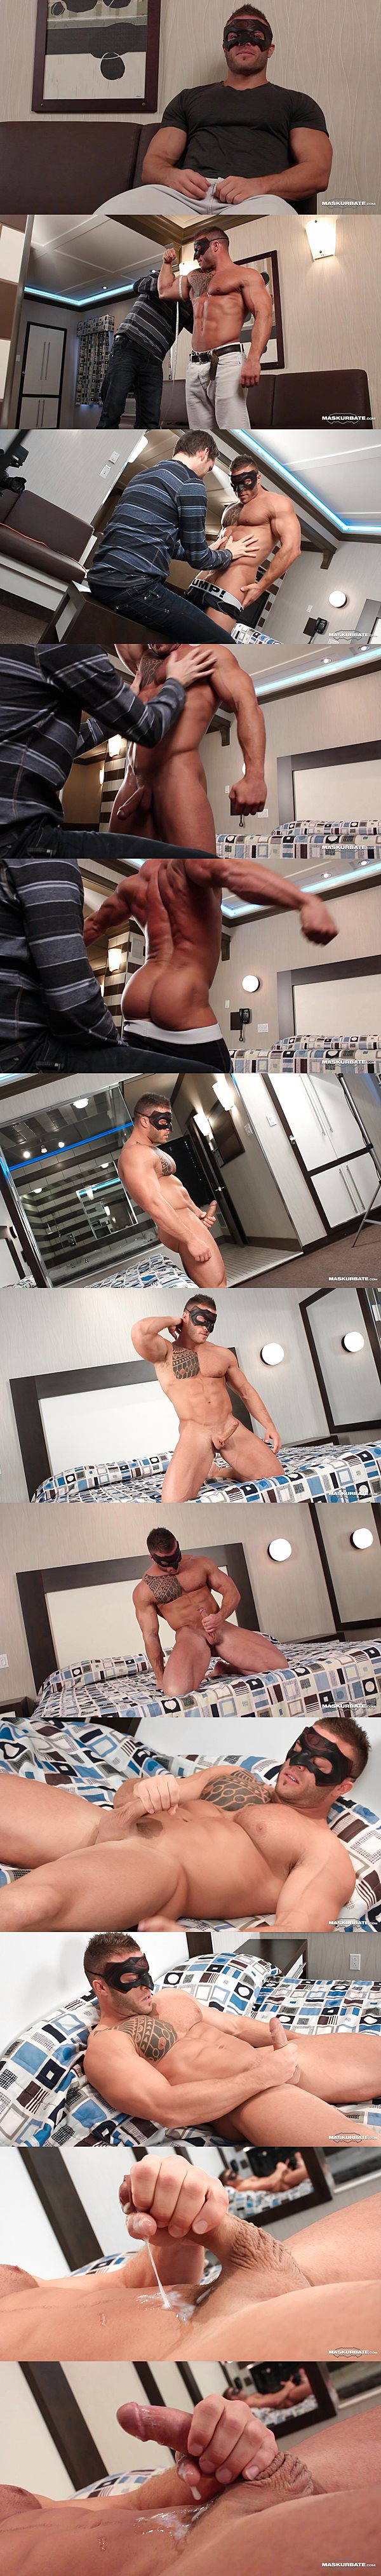 Masculine bodybuilder Devon Dexx shows off his hot muscle body and releases his thick sticky cum with a mask on at Maskurbate 02